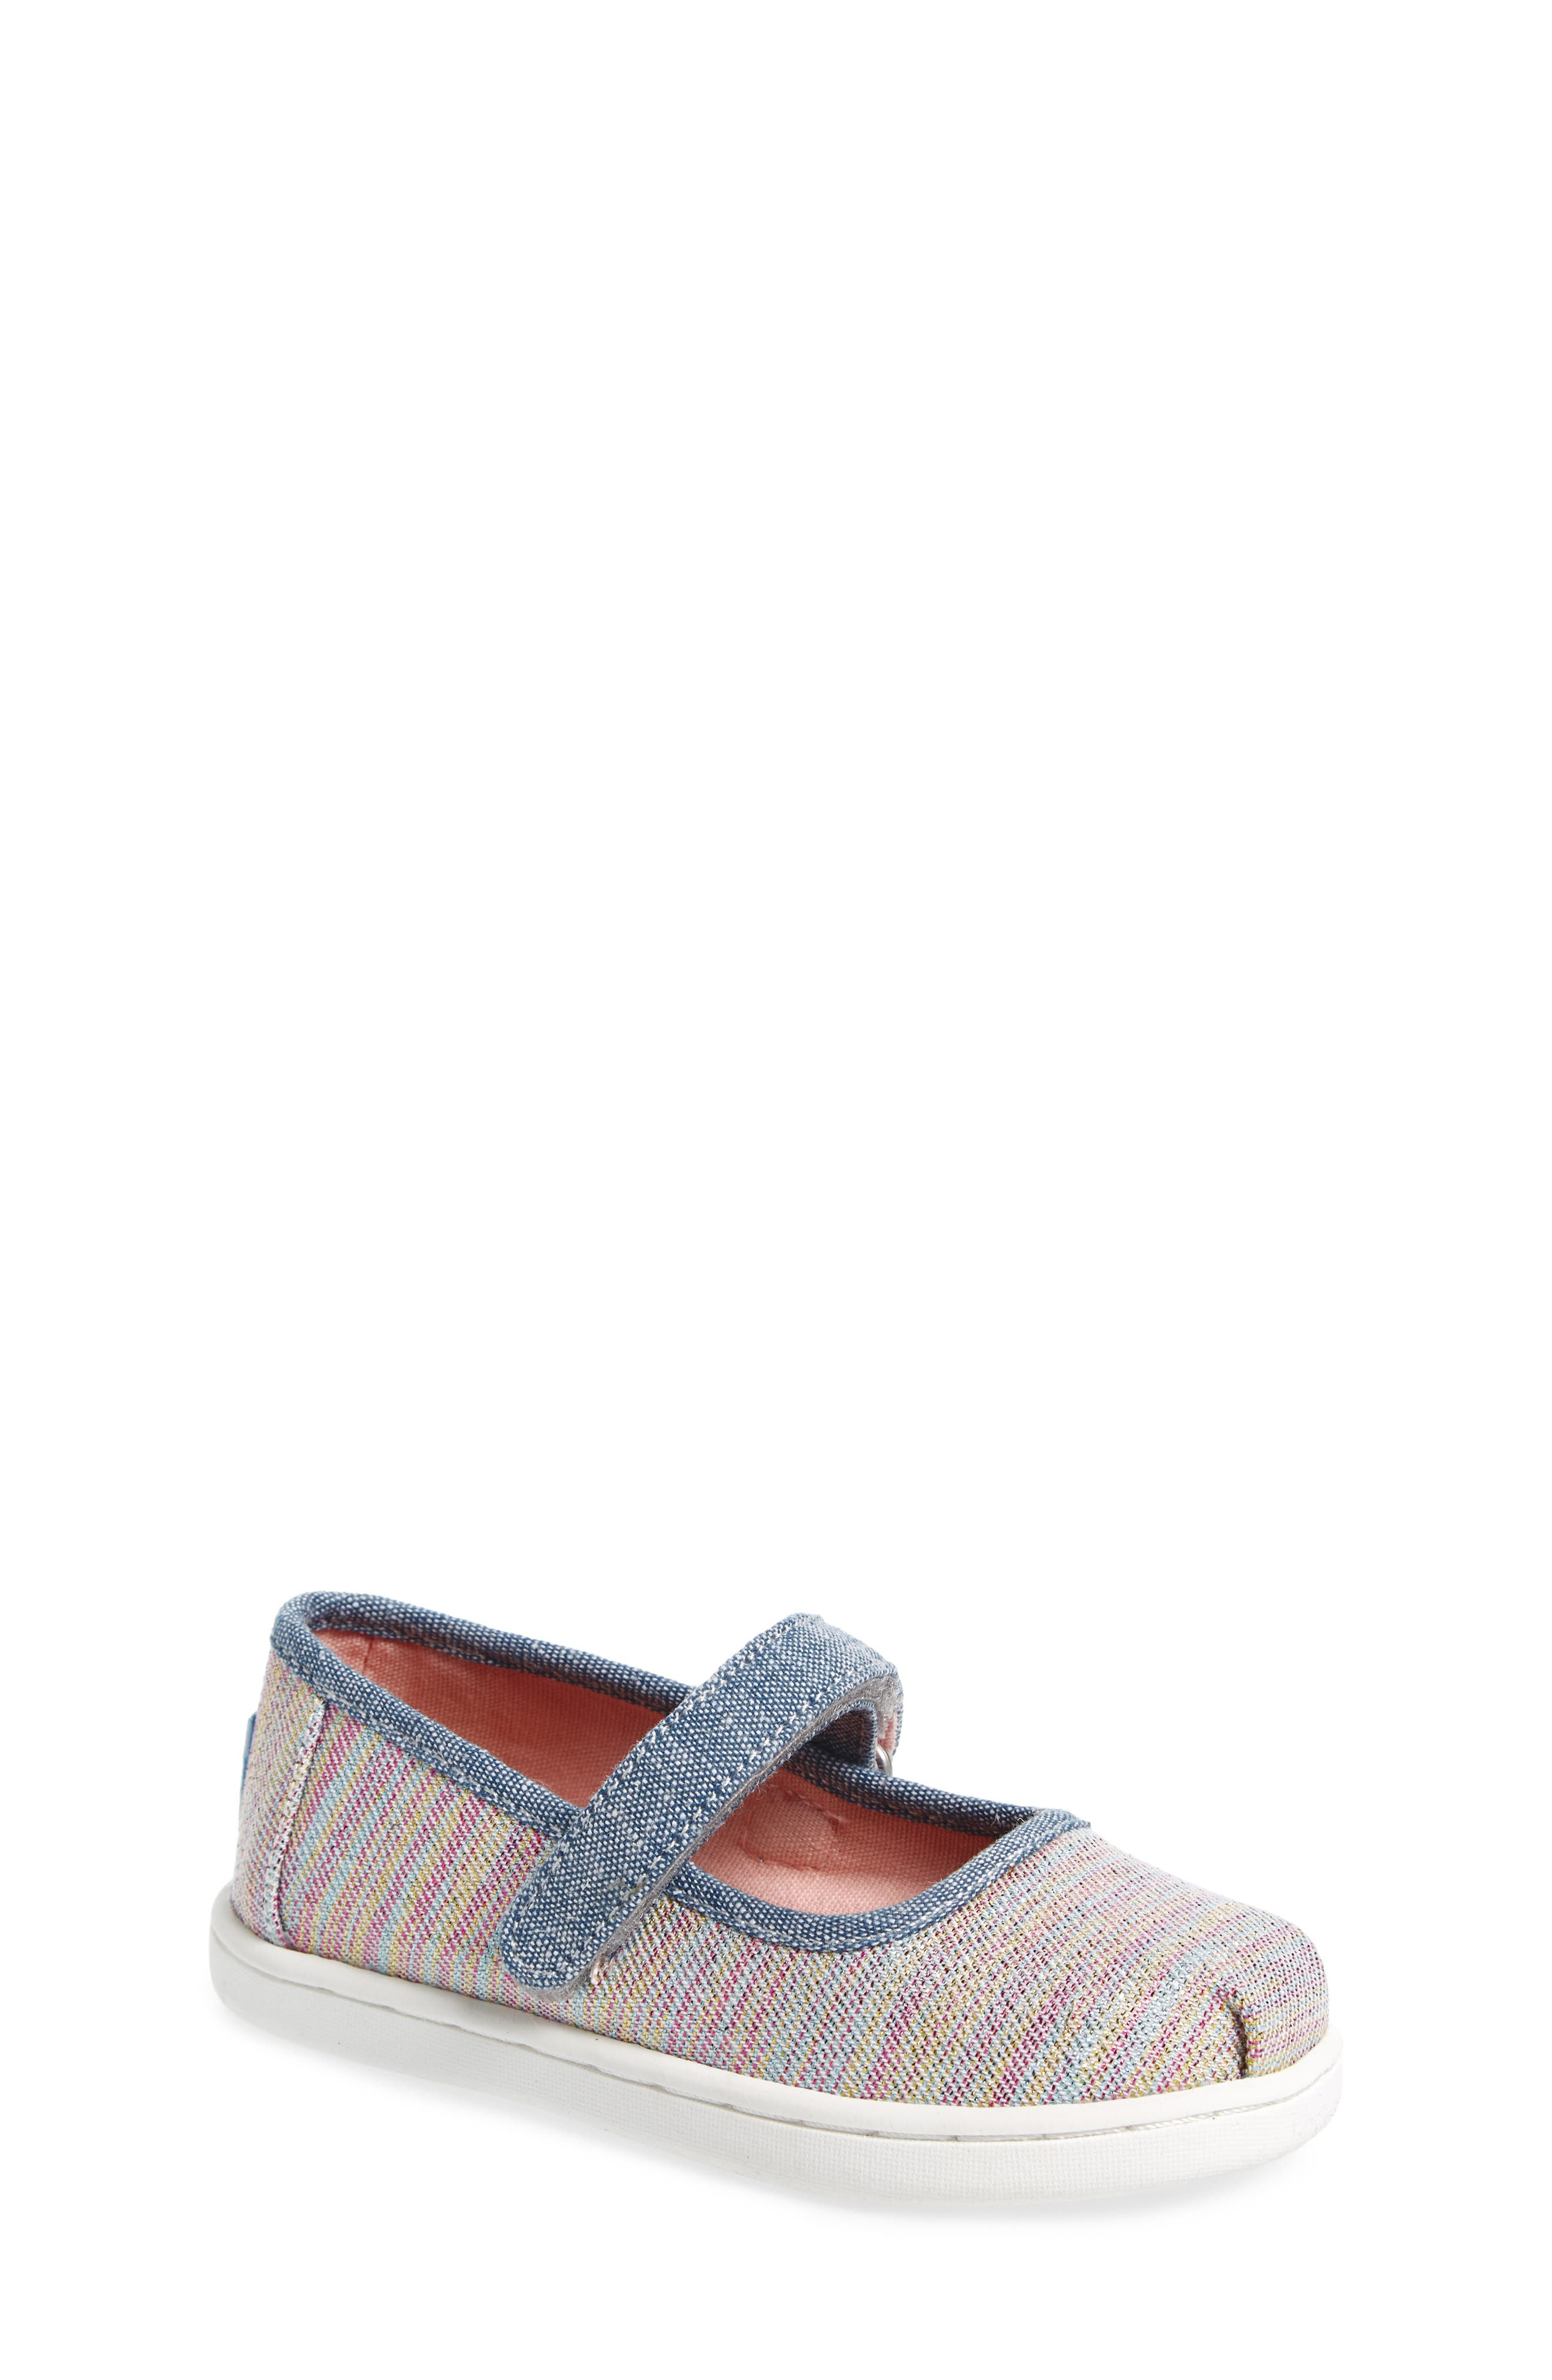 Mary Jane Sneaker,                         Main,                         color, PINK MULTI TWILL GLIMMER